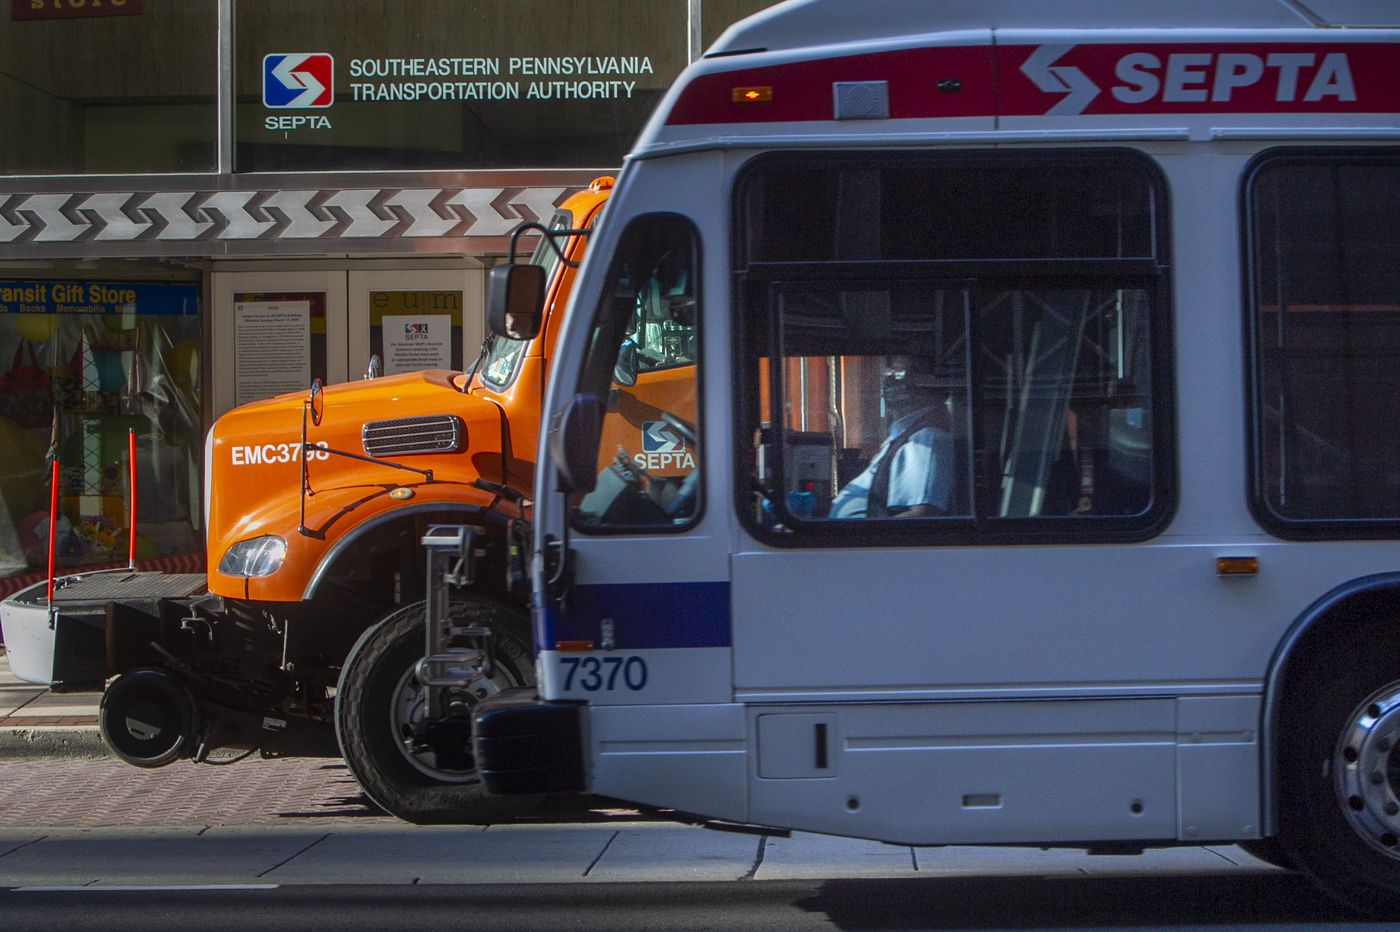 SEPTA malware attack has stifled operations and exasperated frustrated employees: 'I think about quitting every day'